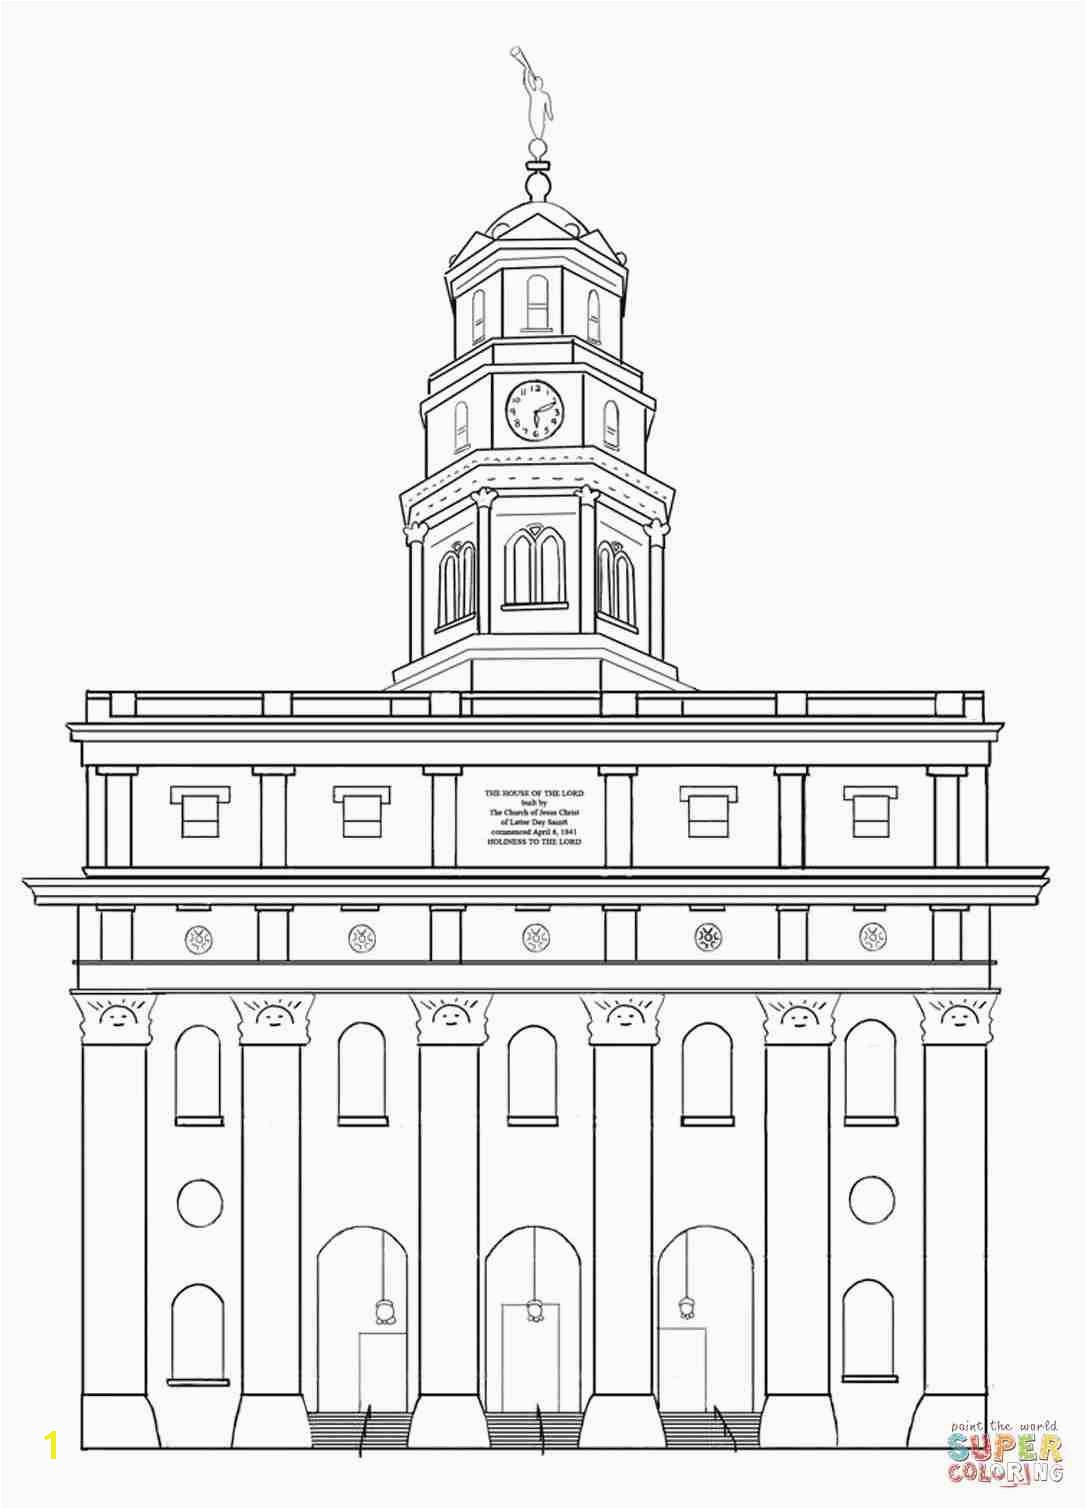 Kirtland Temple Coloring Page Inspirational Lds Temple Coloring Pages Nice Kirtland Page